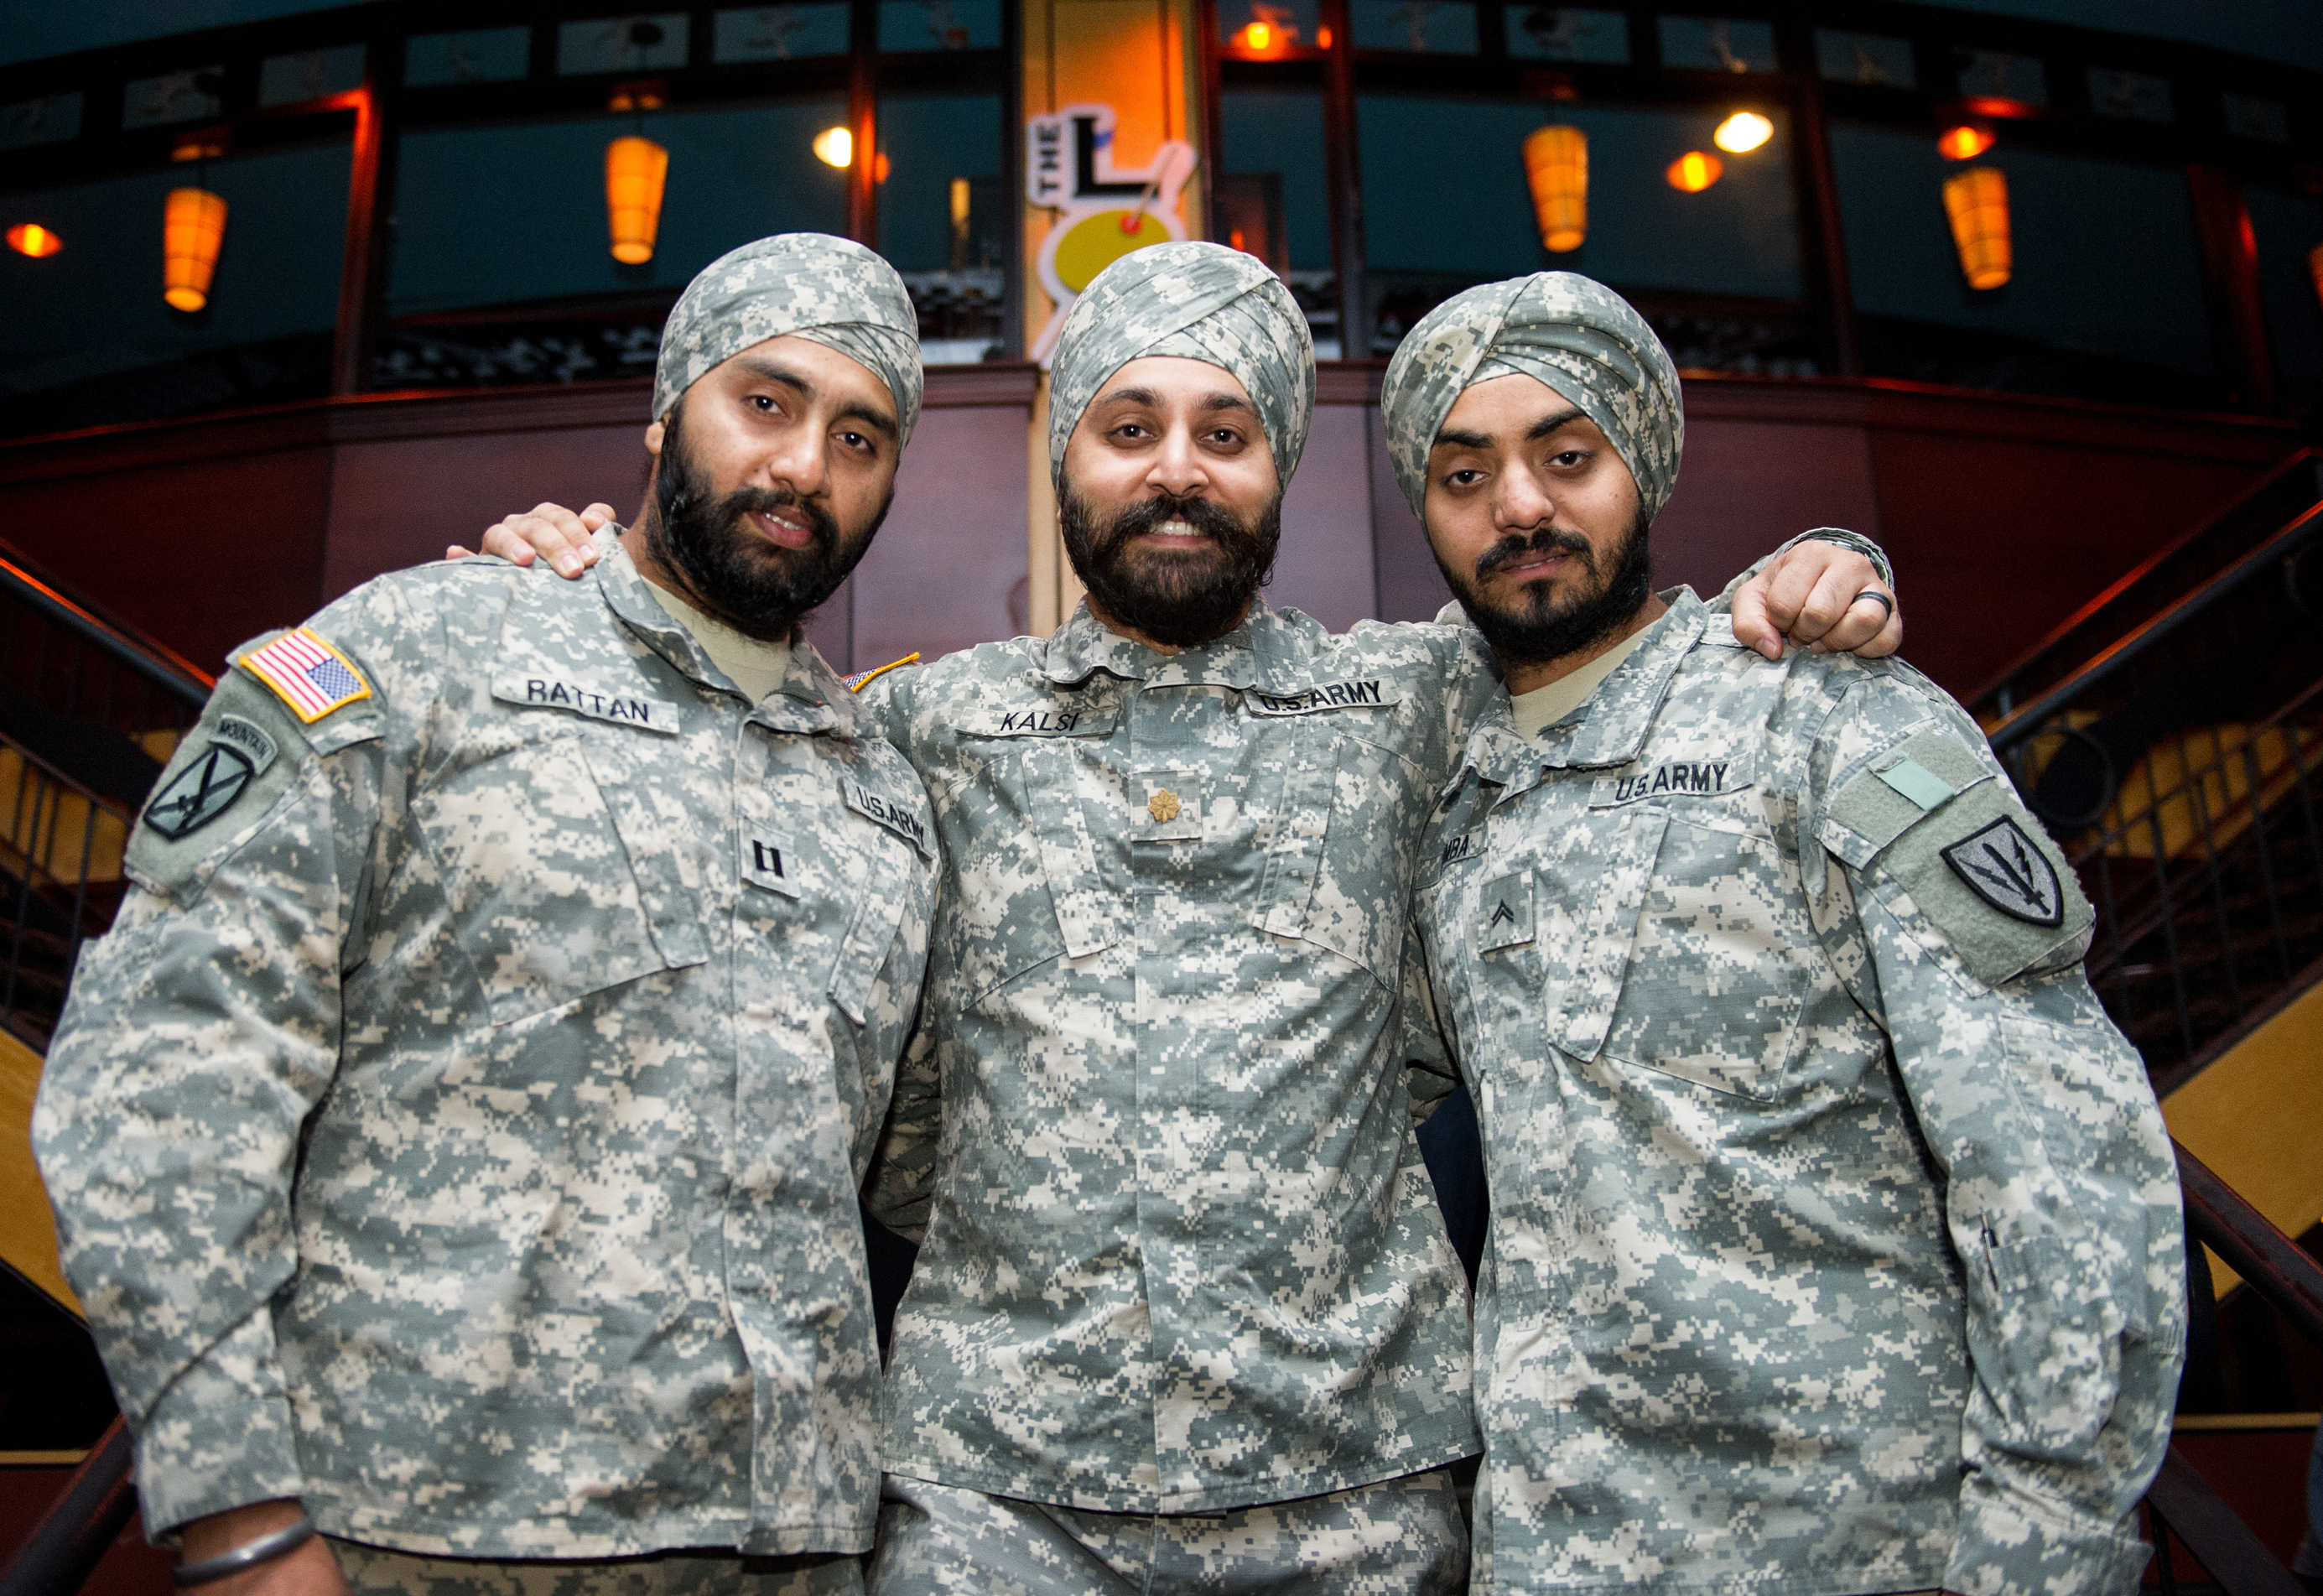 Why Are Only Three Observant Sikh Men Serving In The U.S. Military